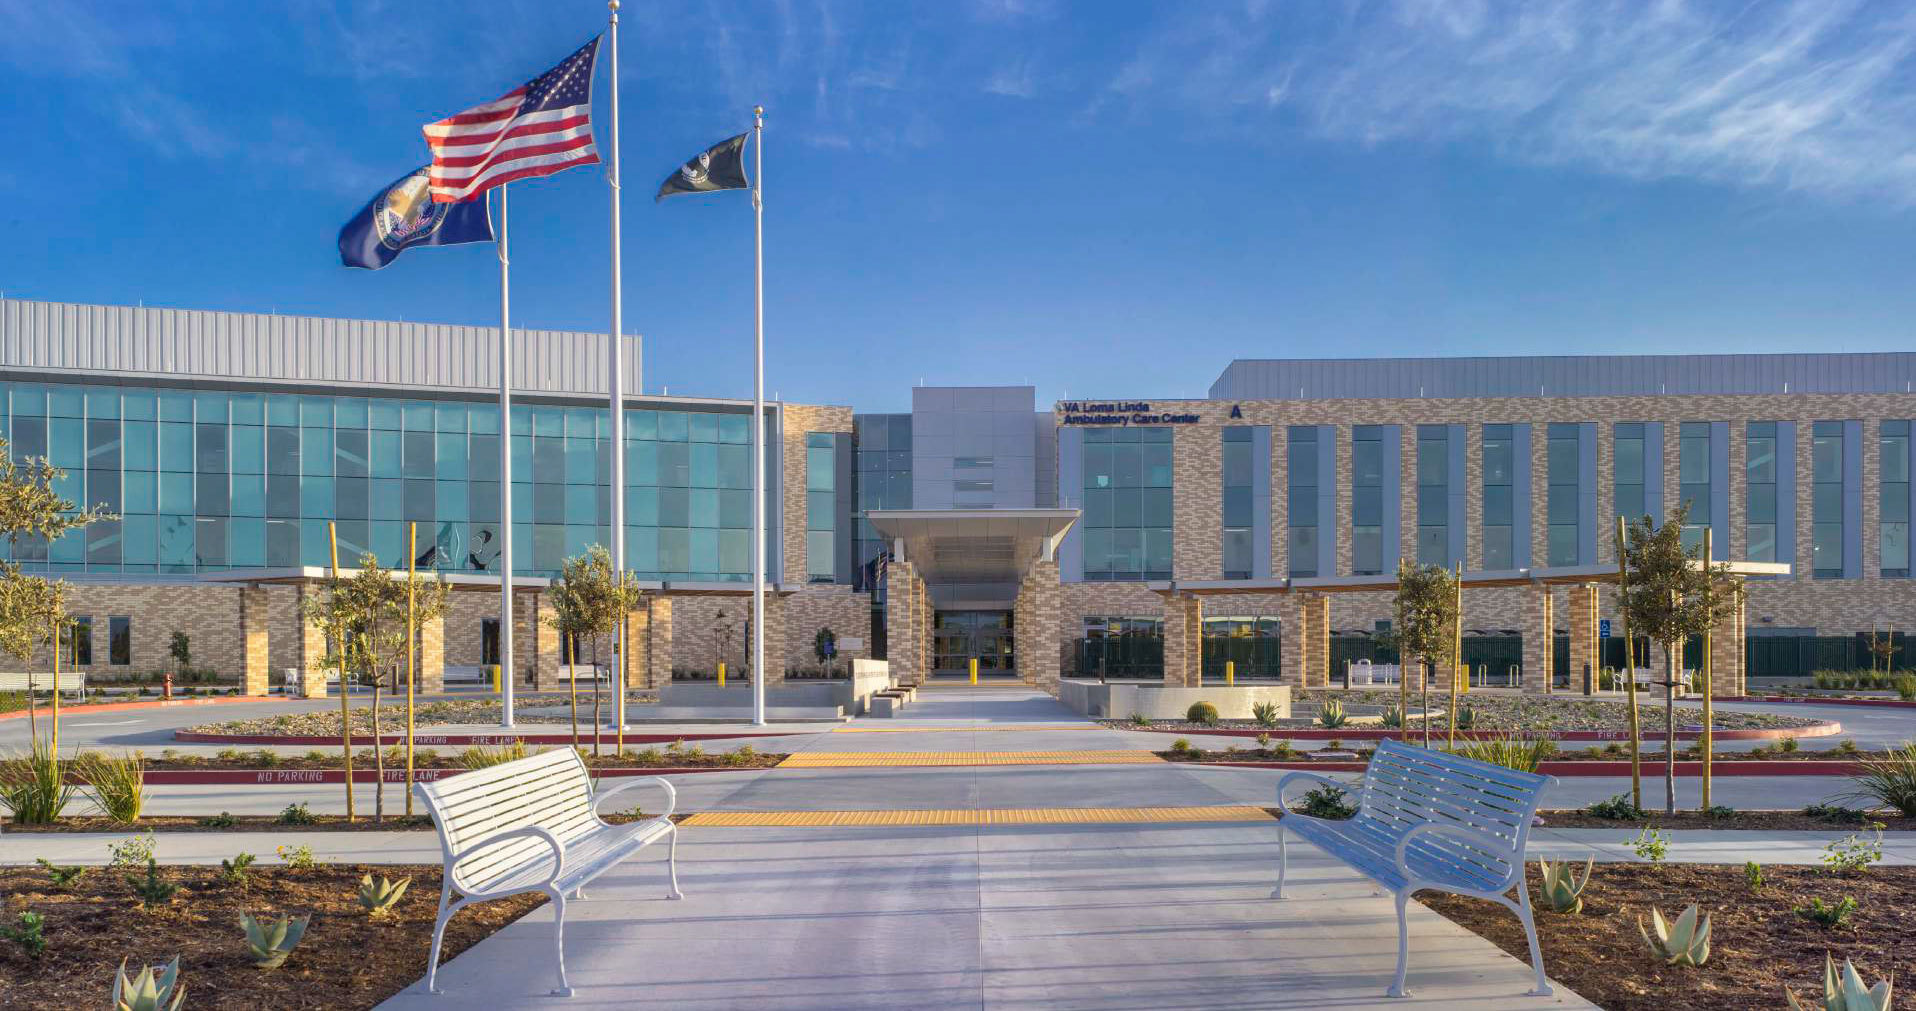 The VA - Loma Linda is 100% leased to the U.S. Government through May 2036 for a total initial, non-cancelable lease term of 20 years (Photo: Business Wire)